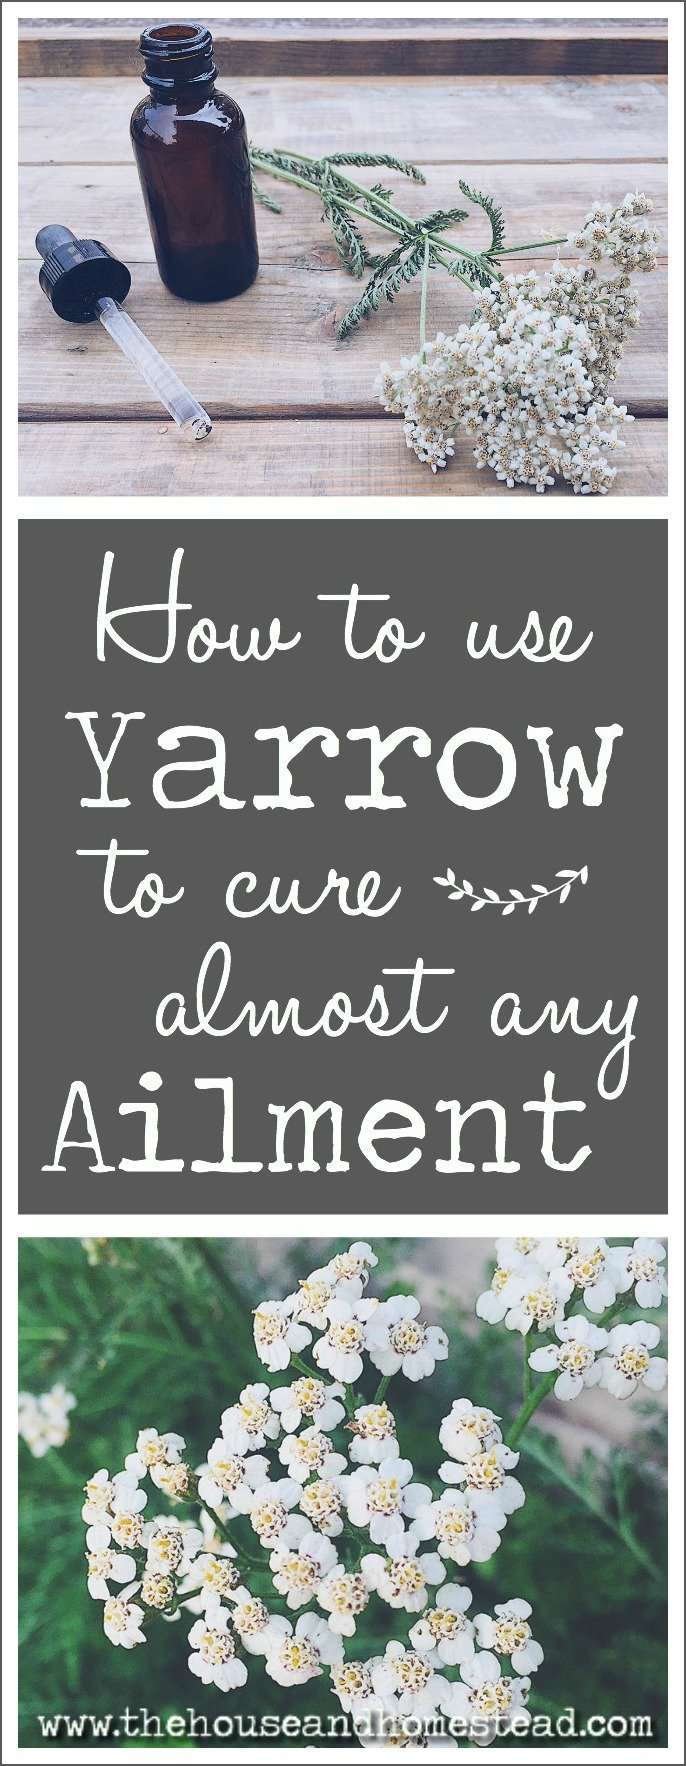 Yarrow is a powerful medicinal plant that can be used to treat almost any general illness or ailment. It makes an excellent addition to your home apothecary and is truly one of the most effective medicinal herbs for use in all sorts of home remedies.